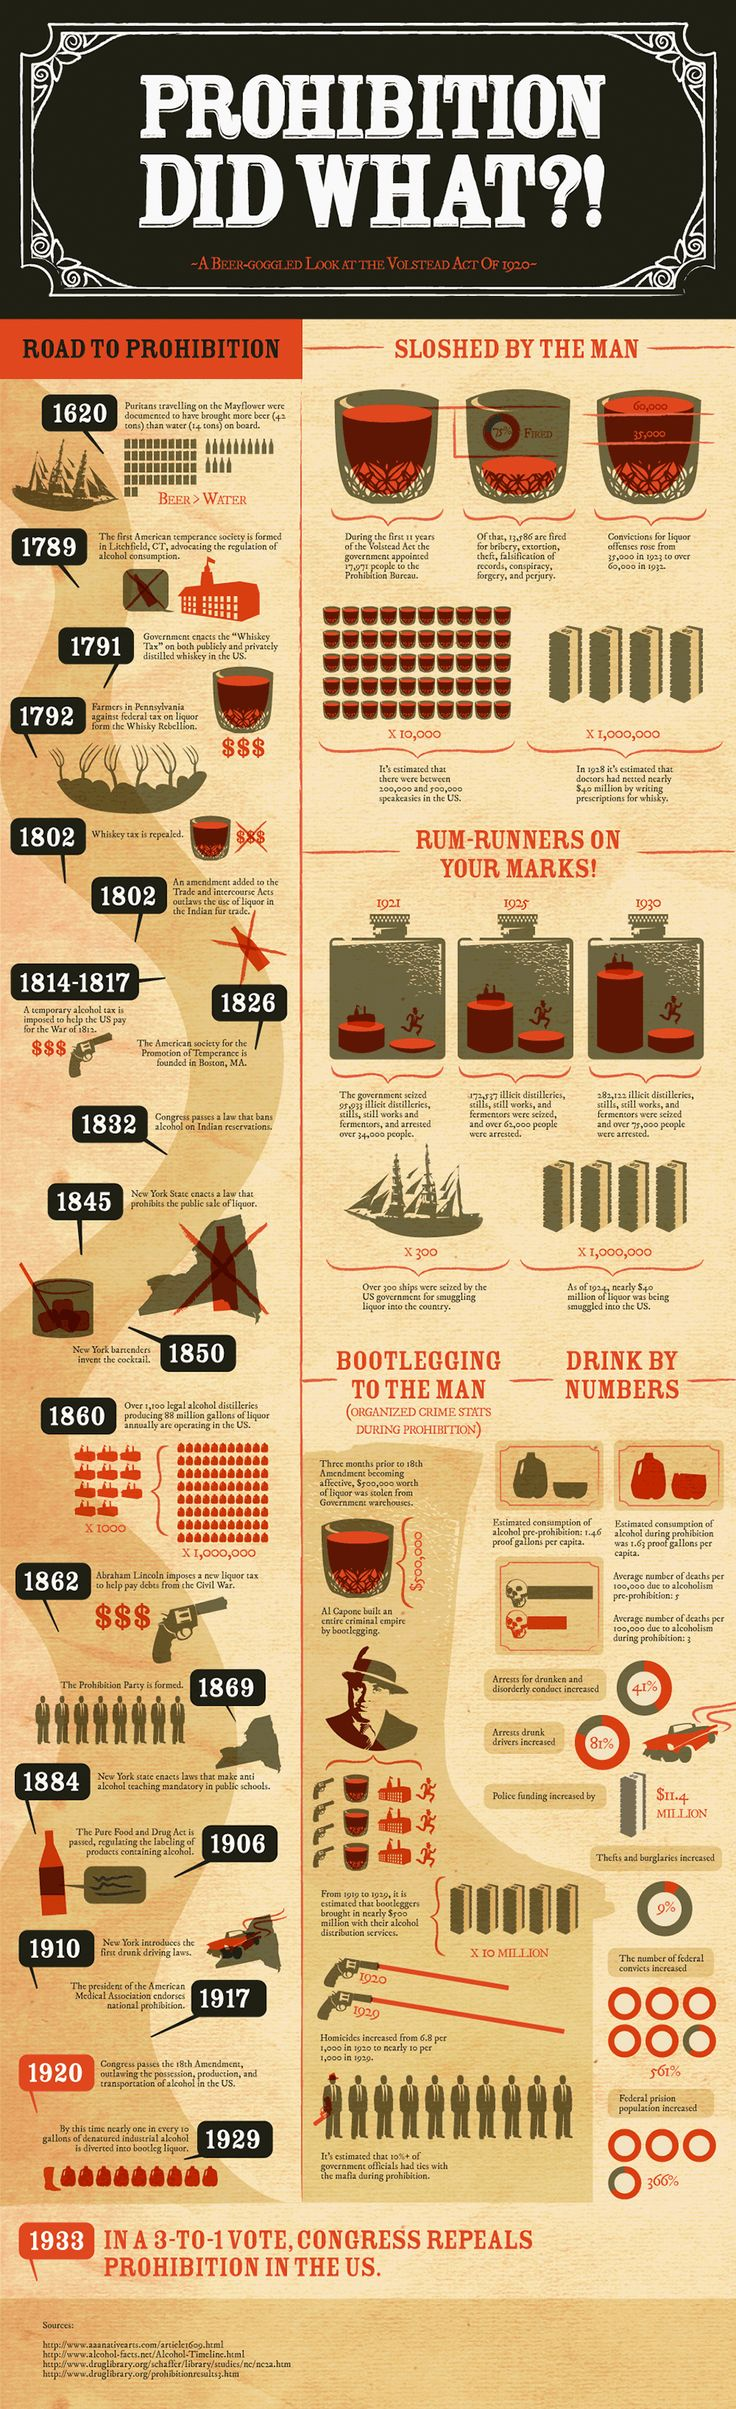 Prohibition by the Numbers